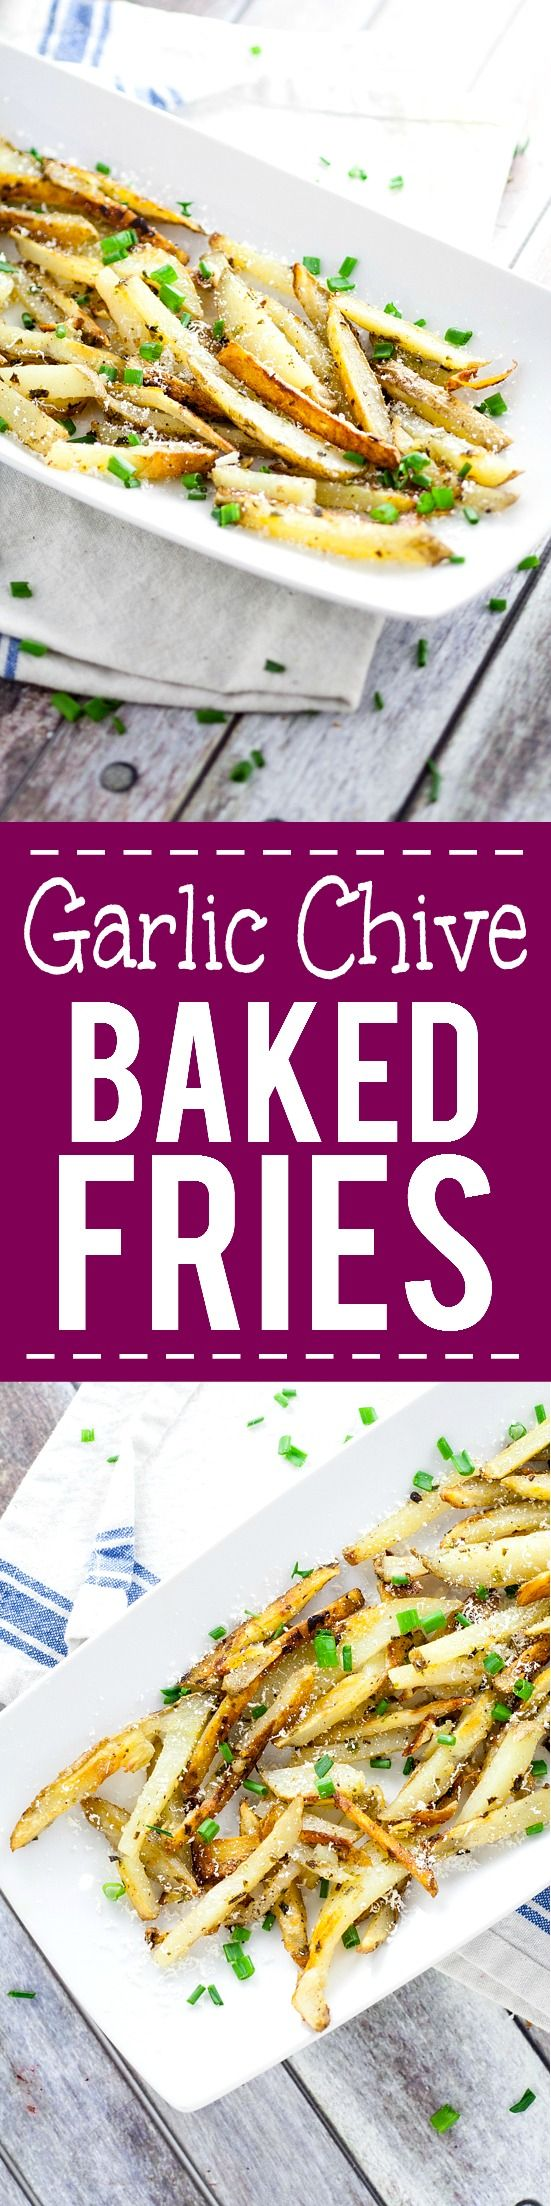 Garlic Chive Baked French Fries recipe -This Garlic Chive Baked French Fries recipe turns an American classic into a zesty new favorite with fresh garlic and chives tossed with butter and fries and baked in the oven. This looks like a fabulous quick and easy side dish recipe! What's not to love?!